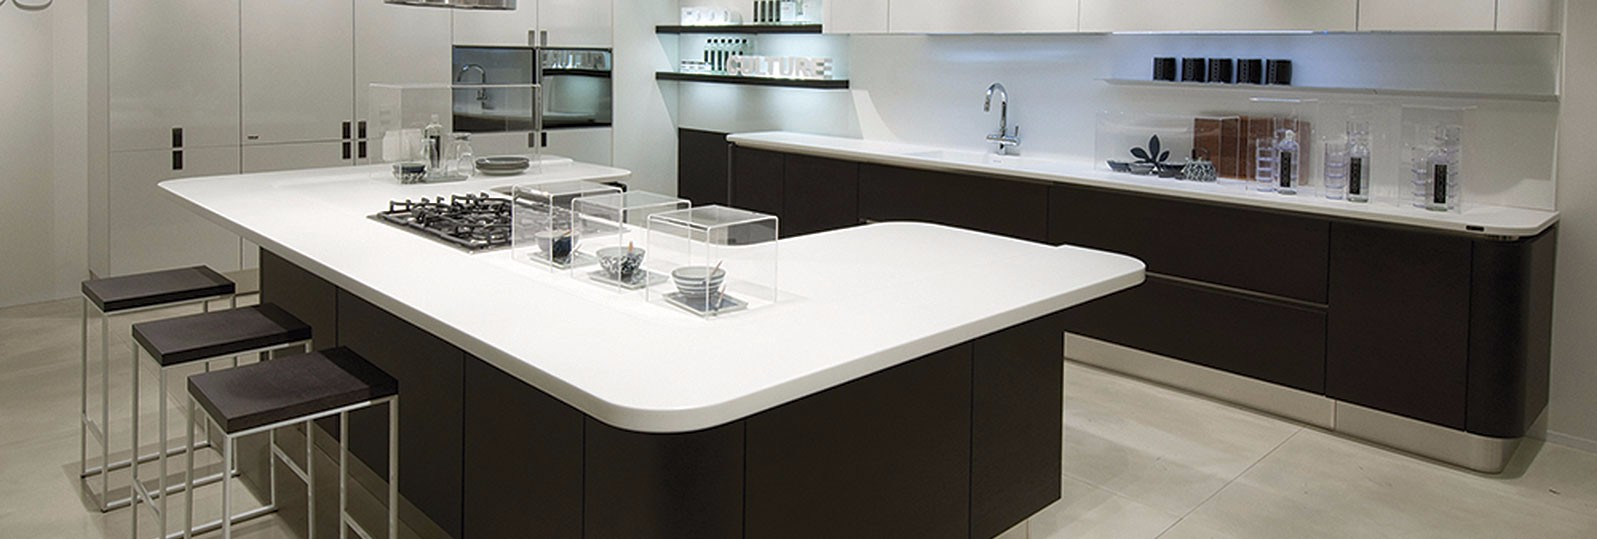 staron-white-kitchen-2